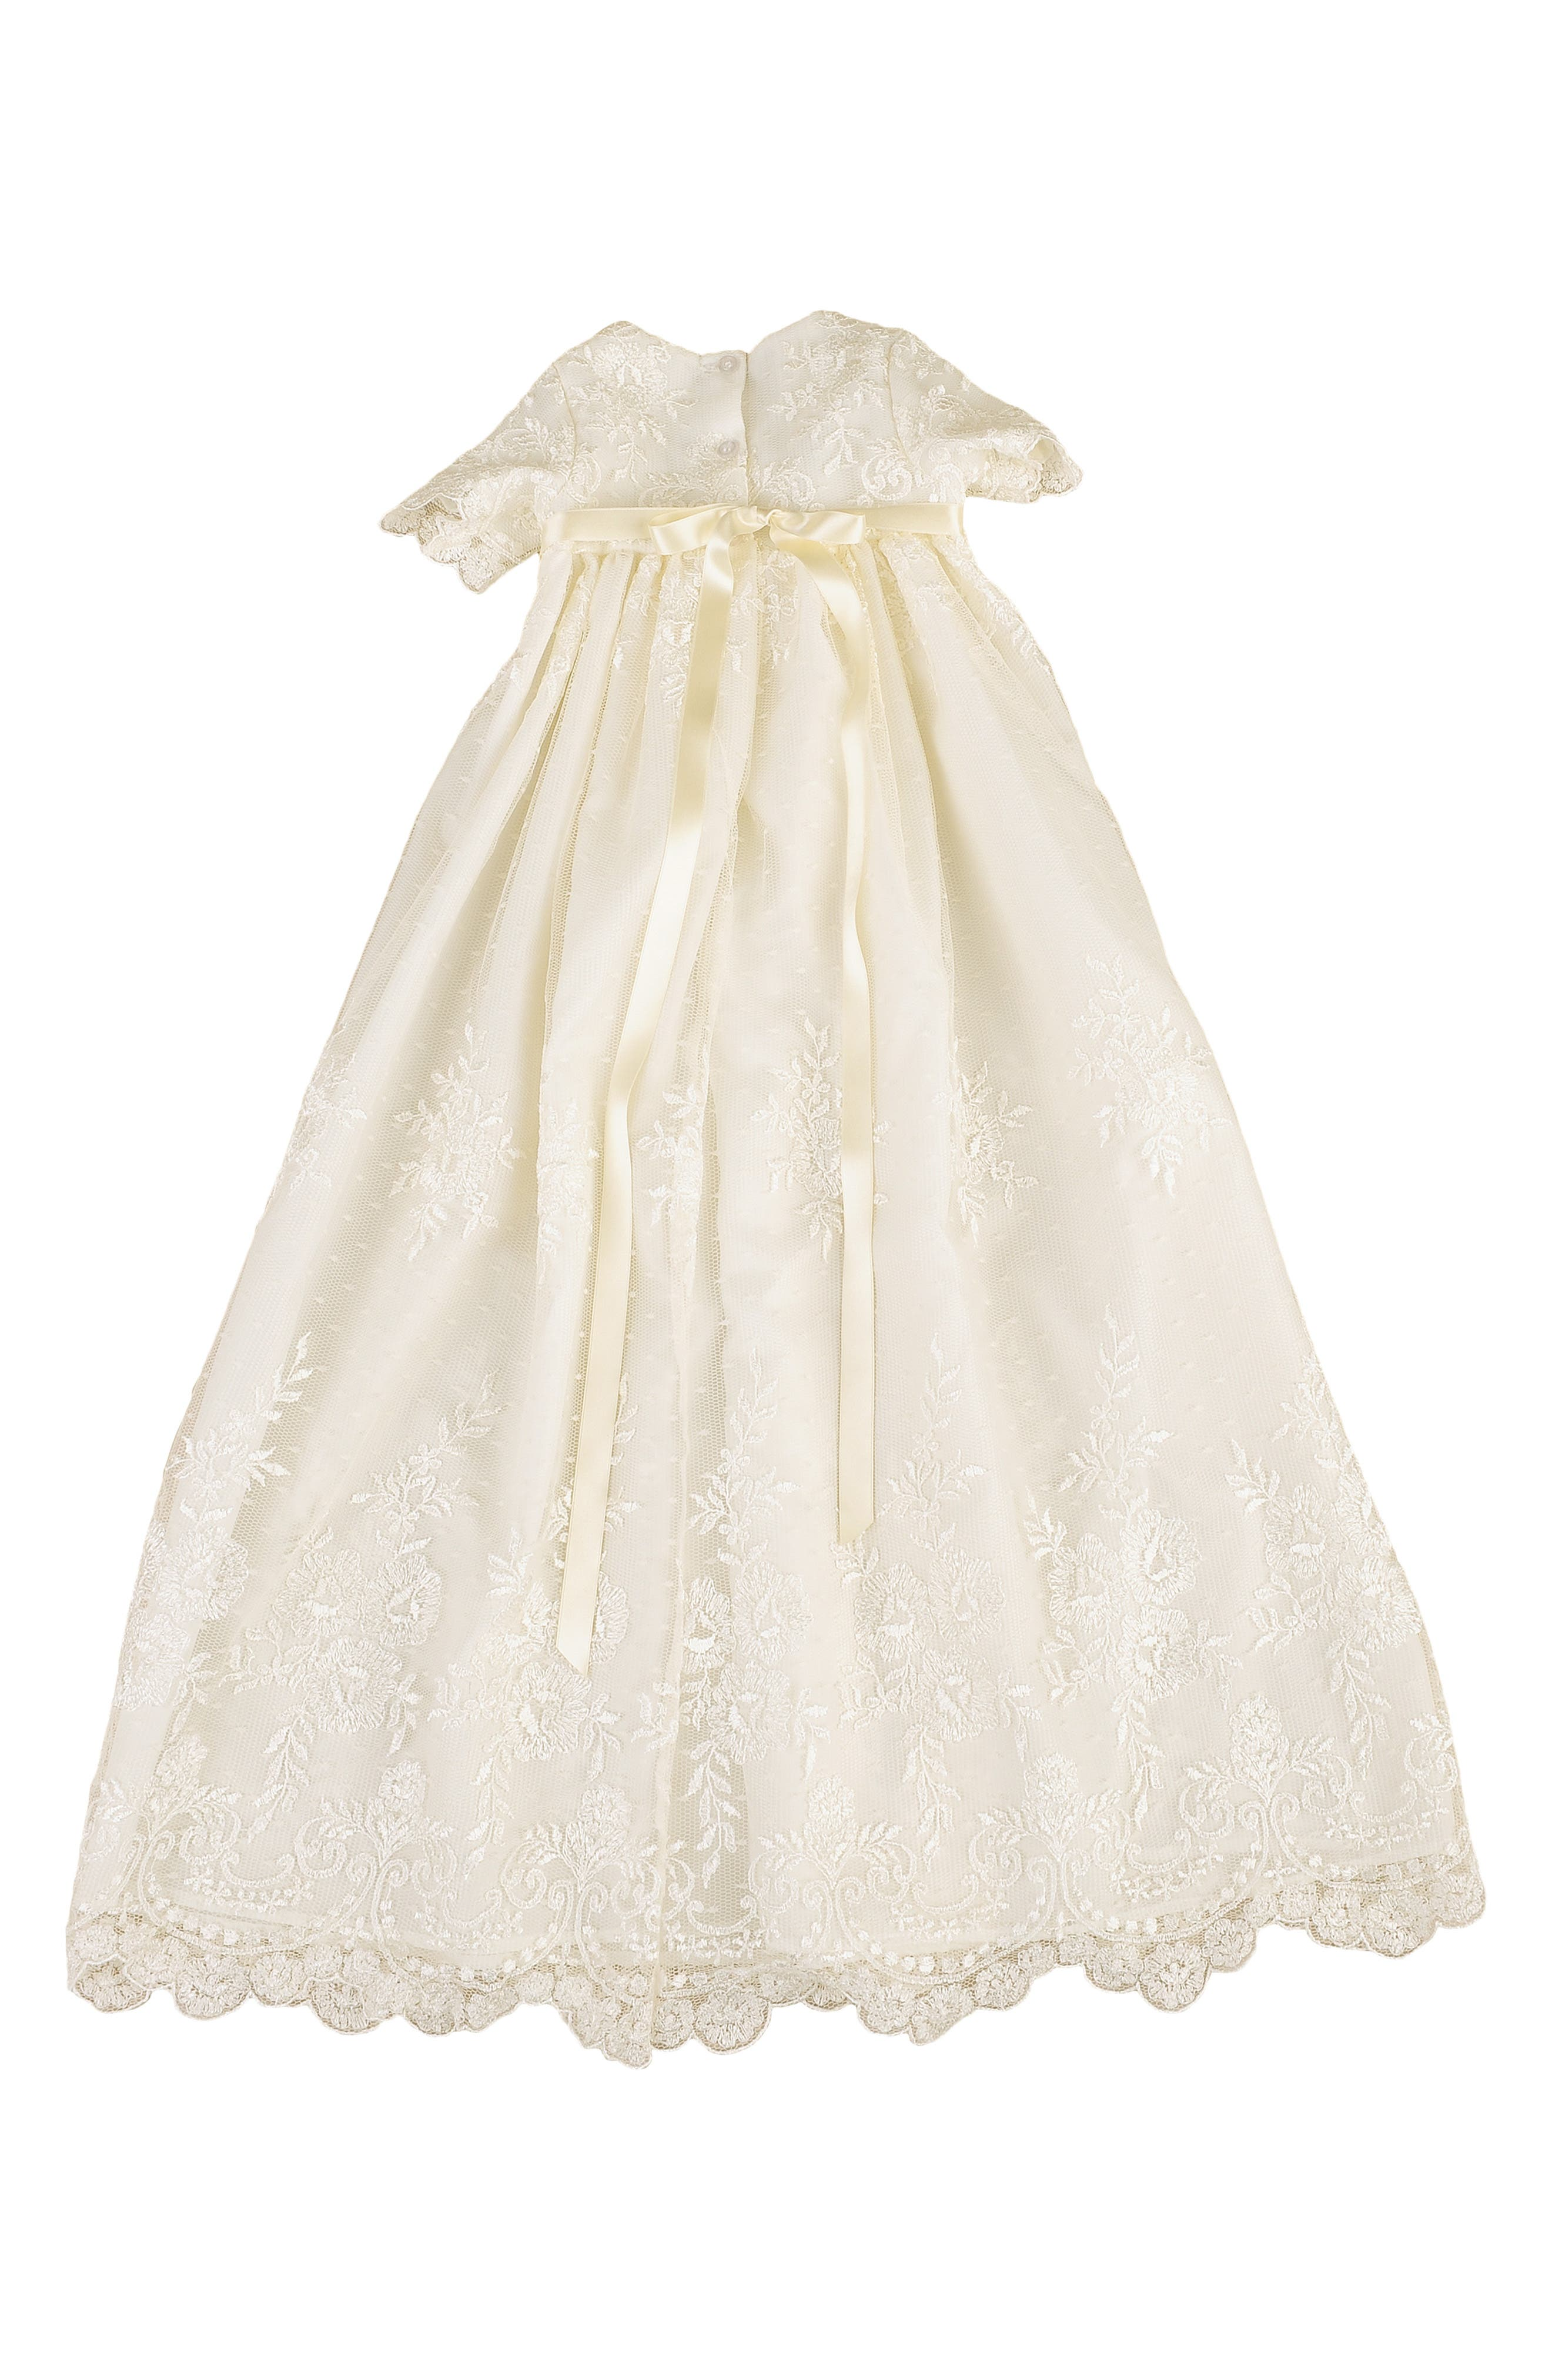 LITTLE THINGS MEAN A LOT, Christening Gown, Shawl, Slip & Bonnet Set, Alternate thumbnail 2, color, IVORY